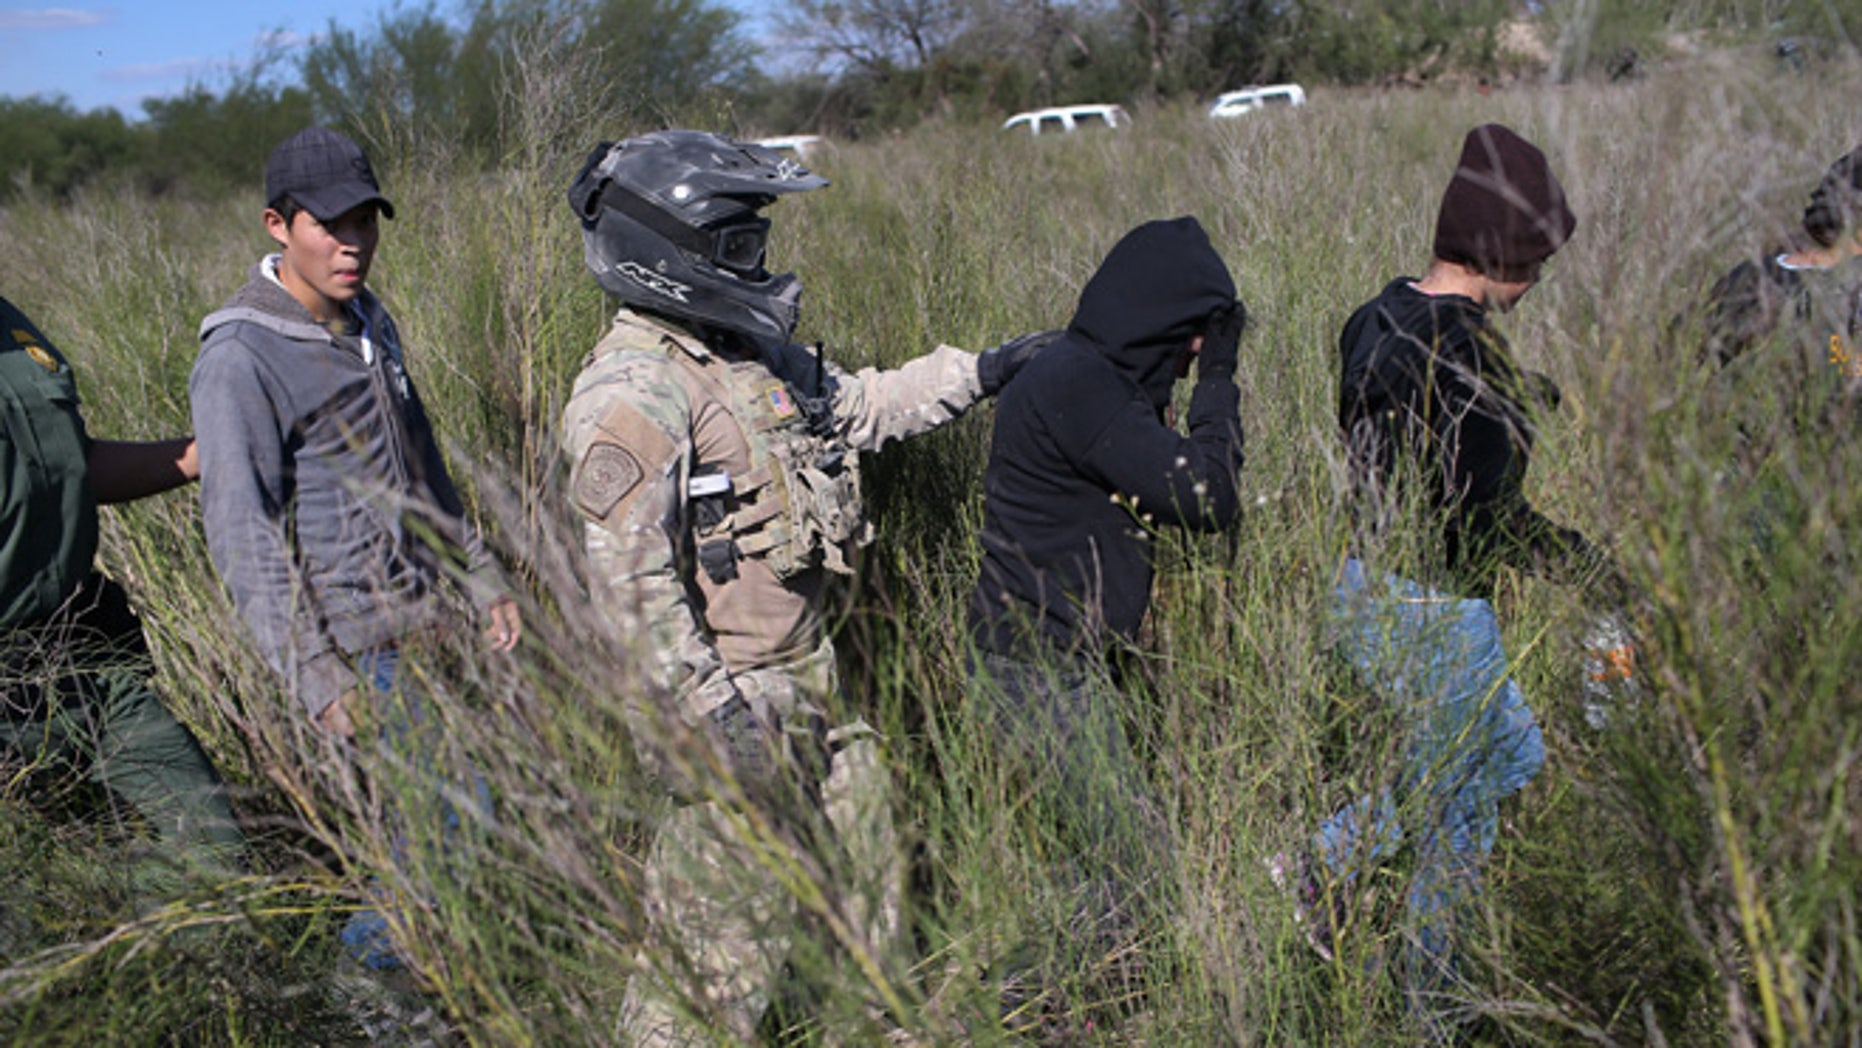 Texas looking for ways to enforce immigration without